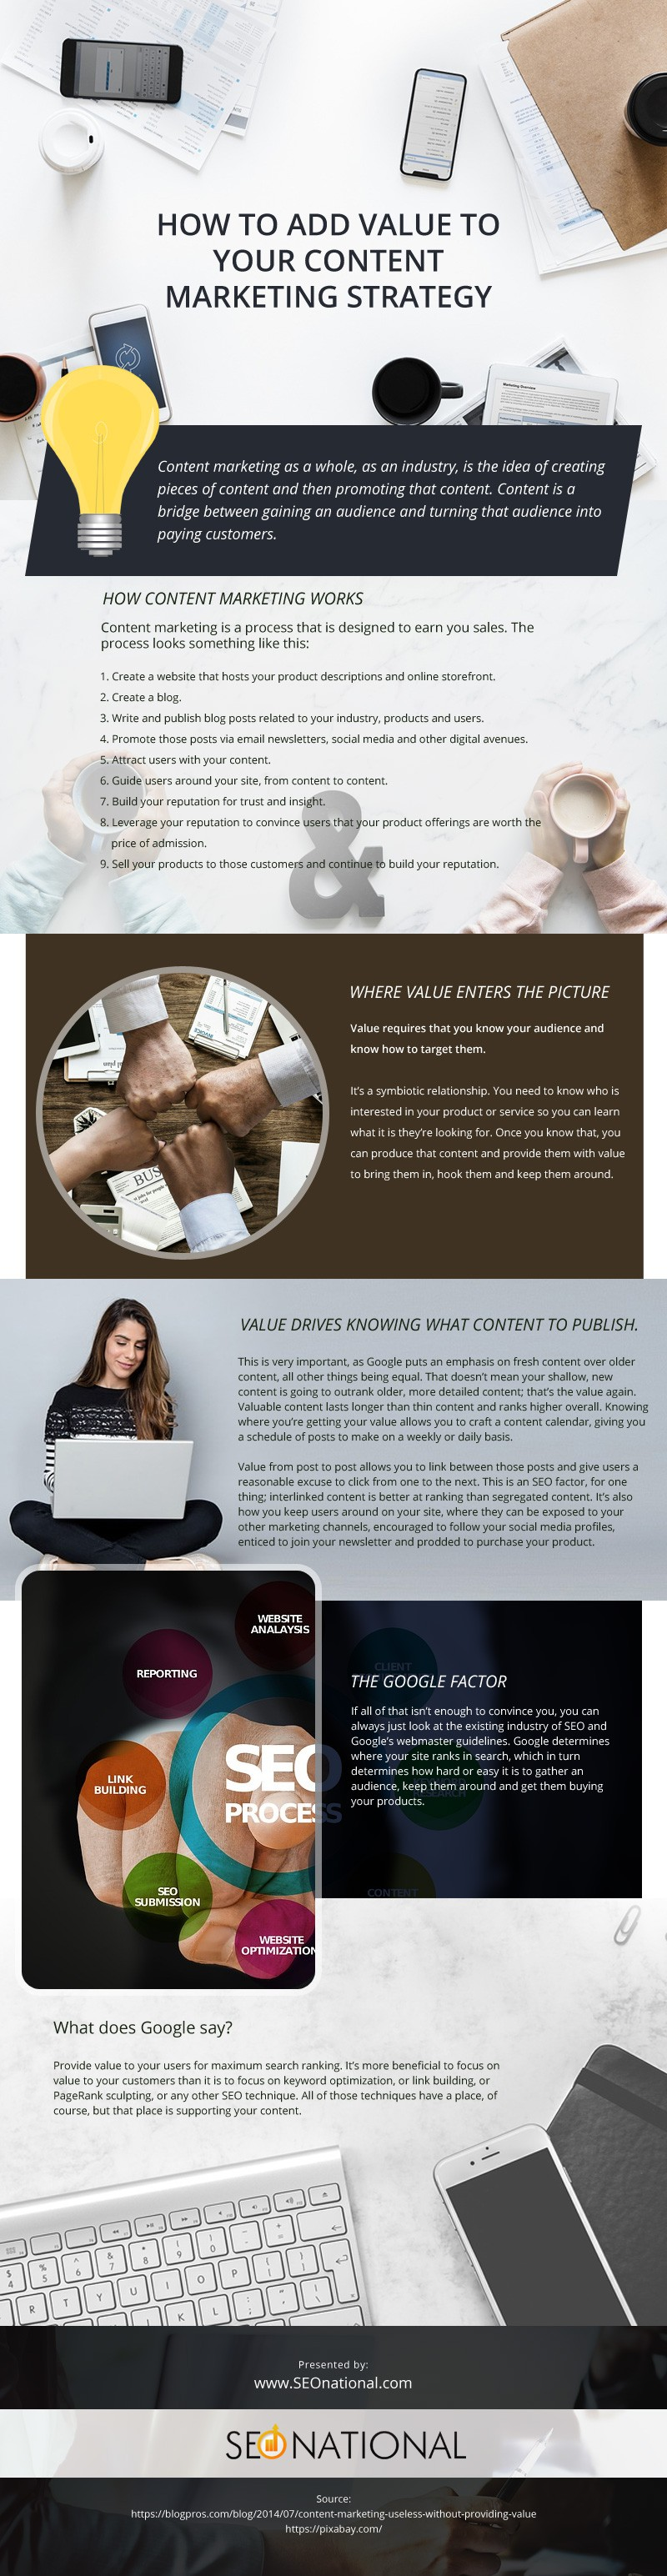 Content-Marketing-is-Useless-Without-Providing-Value Infographic